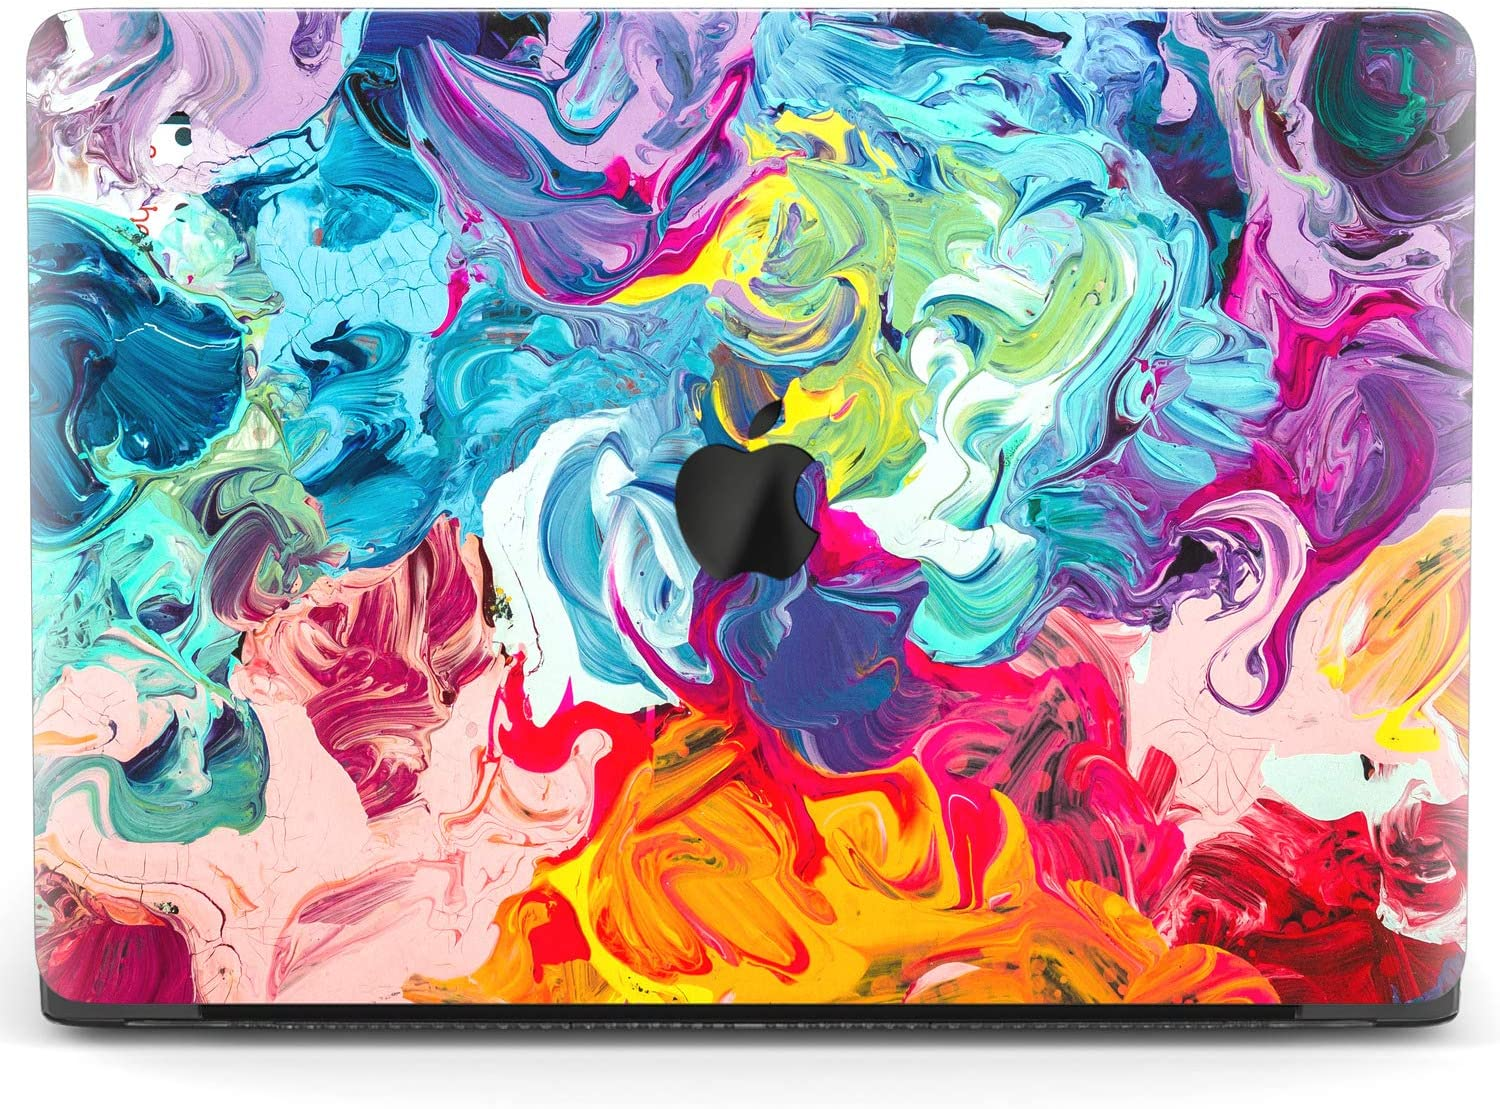 Mertak Hard Case for Apple MacBook Pro 16 Air 13 inch Mac 15 Retina 12 11 2020 2019 2018 2017 Colorful Pattern Art Cute Plastic Paint Woman Cover Protective Design Laptop Abstract Shell Strokes